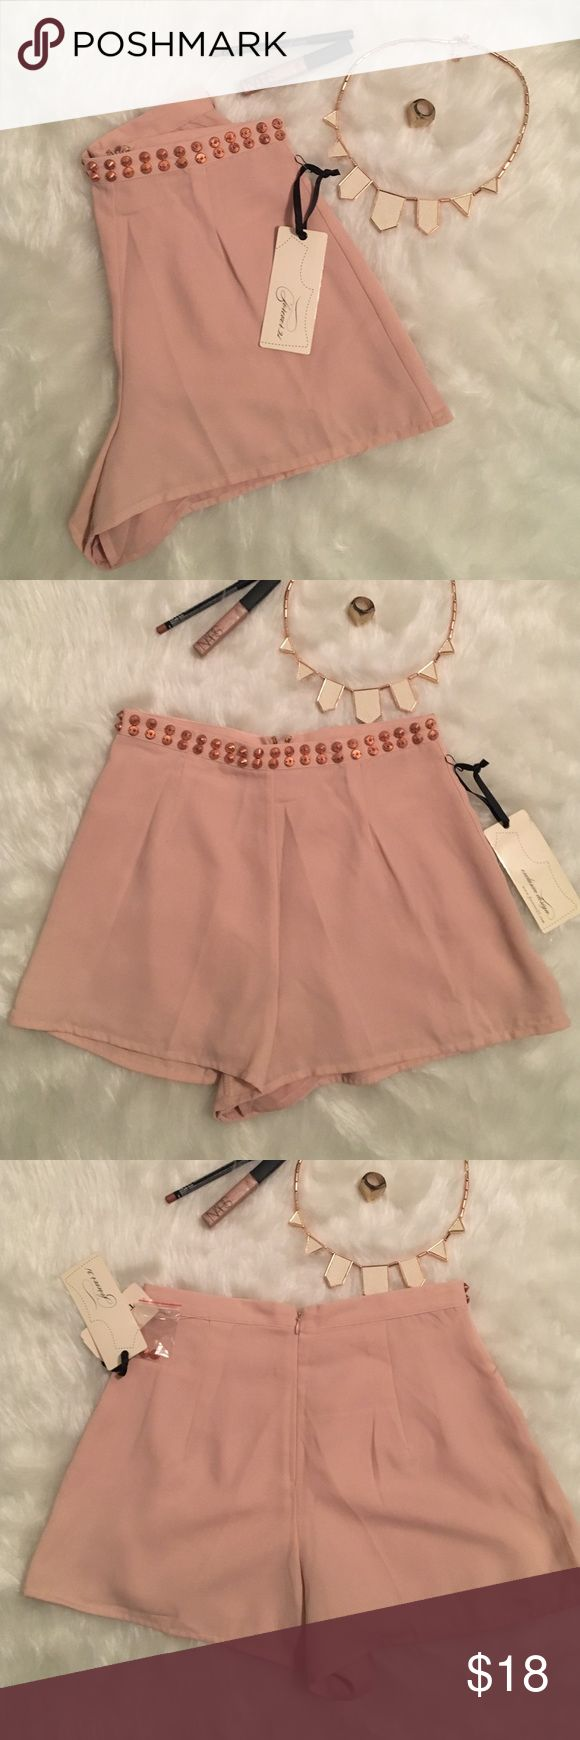 Nude and gold shorts Pinkish nude shorts with rose gold accents Forever 21 Shorts